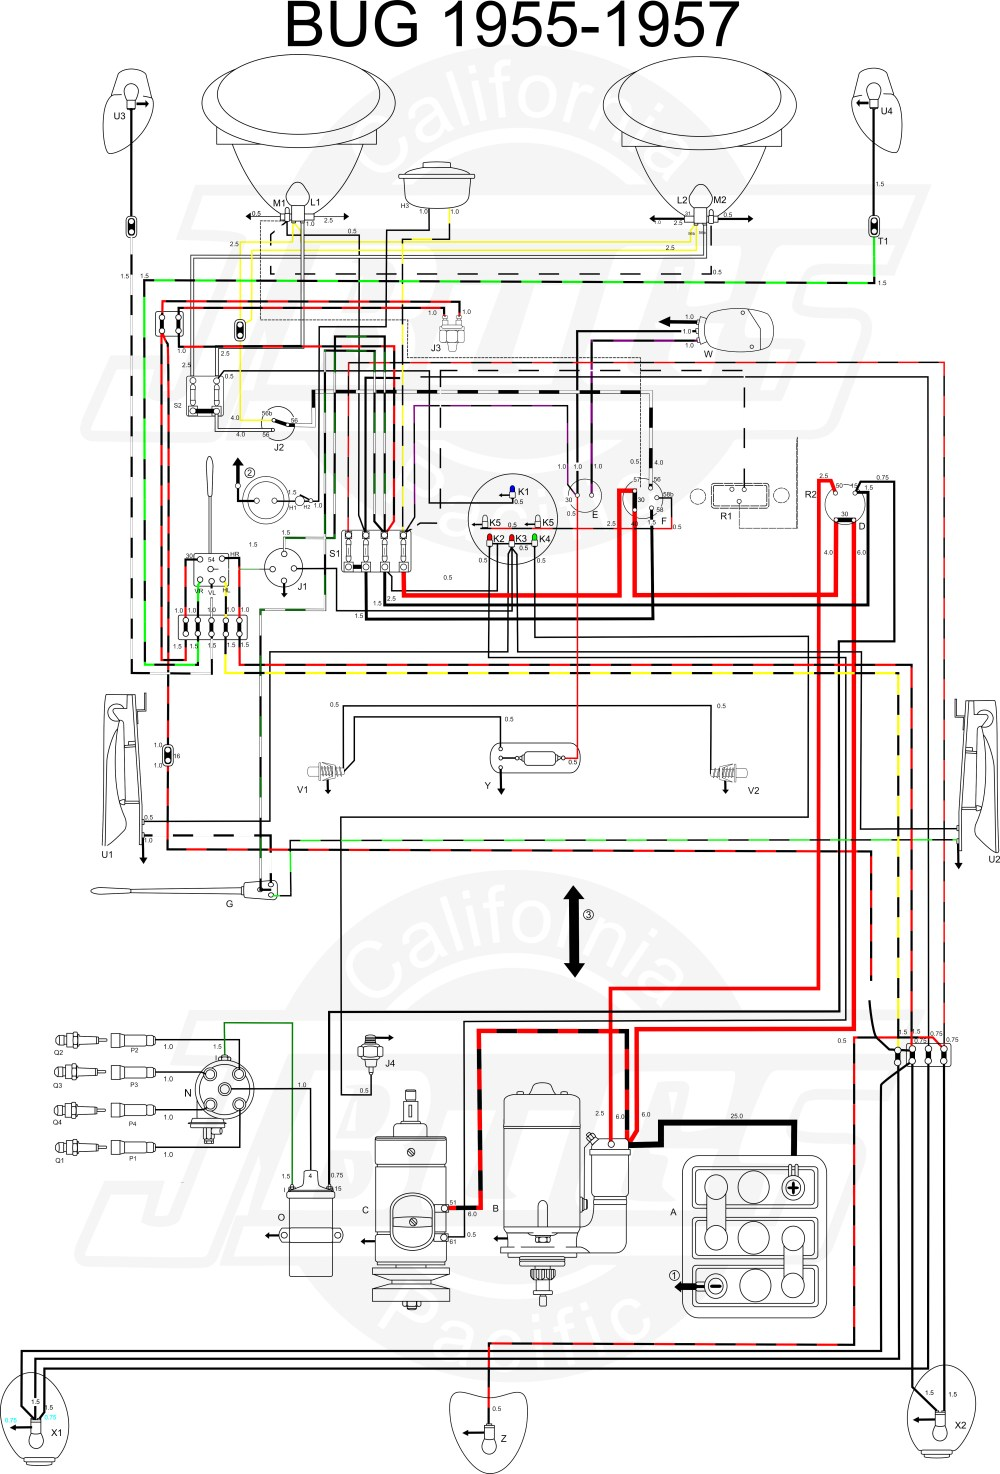 medium resolution of bus wiring diagrams wiring diagram datasource1978 vw bus wiring harness wiring diagram toolbox dcc bus wiring